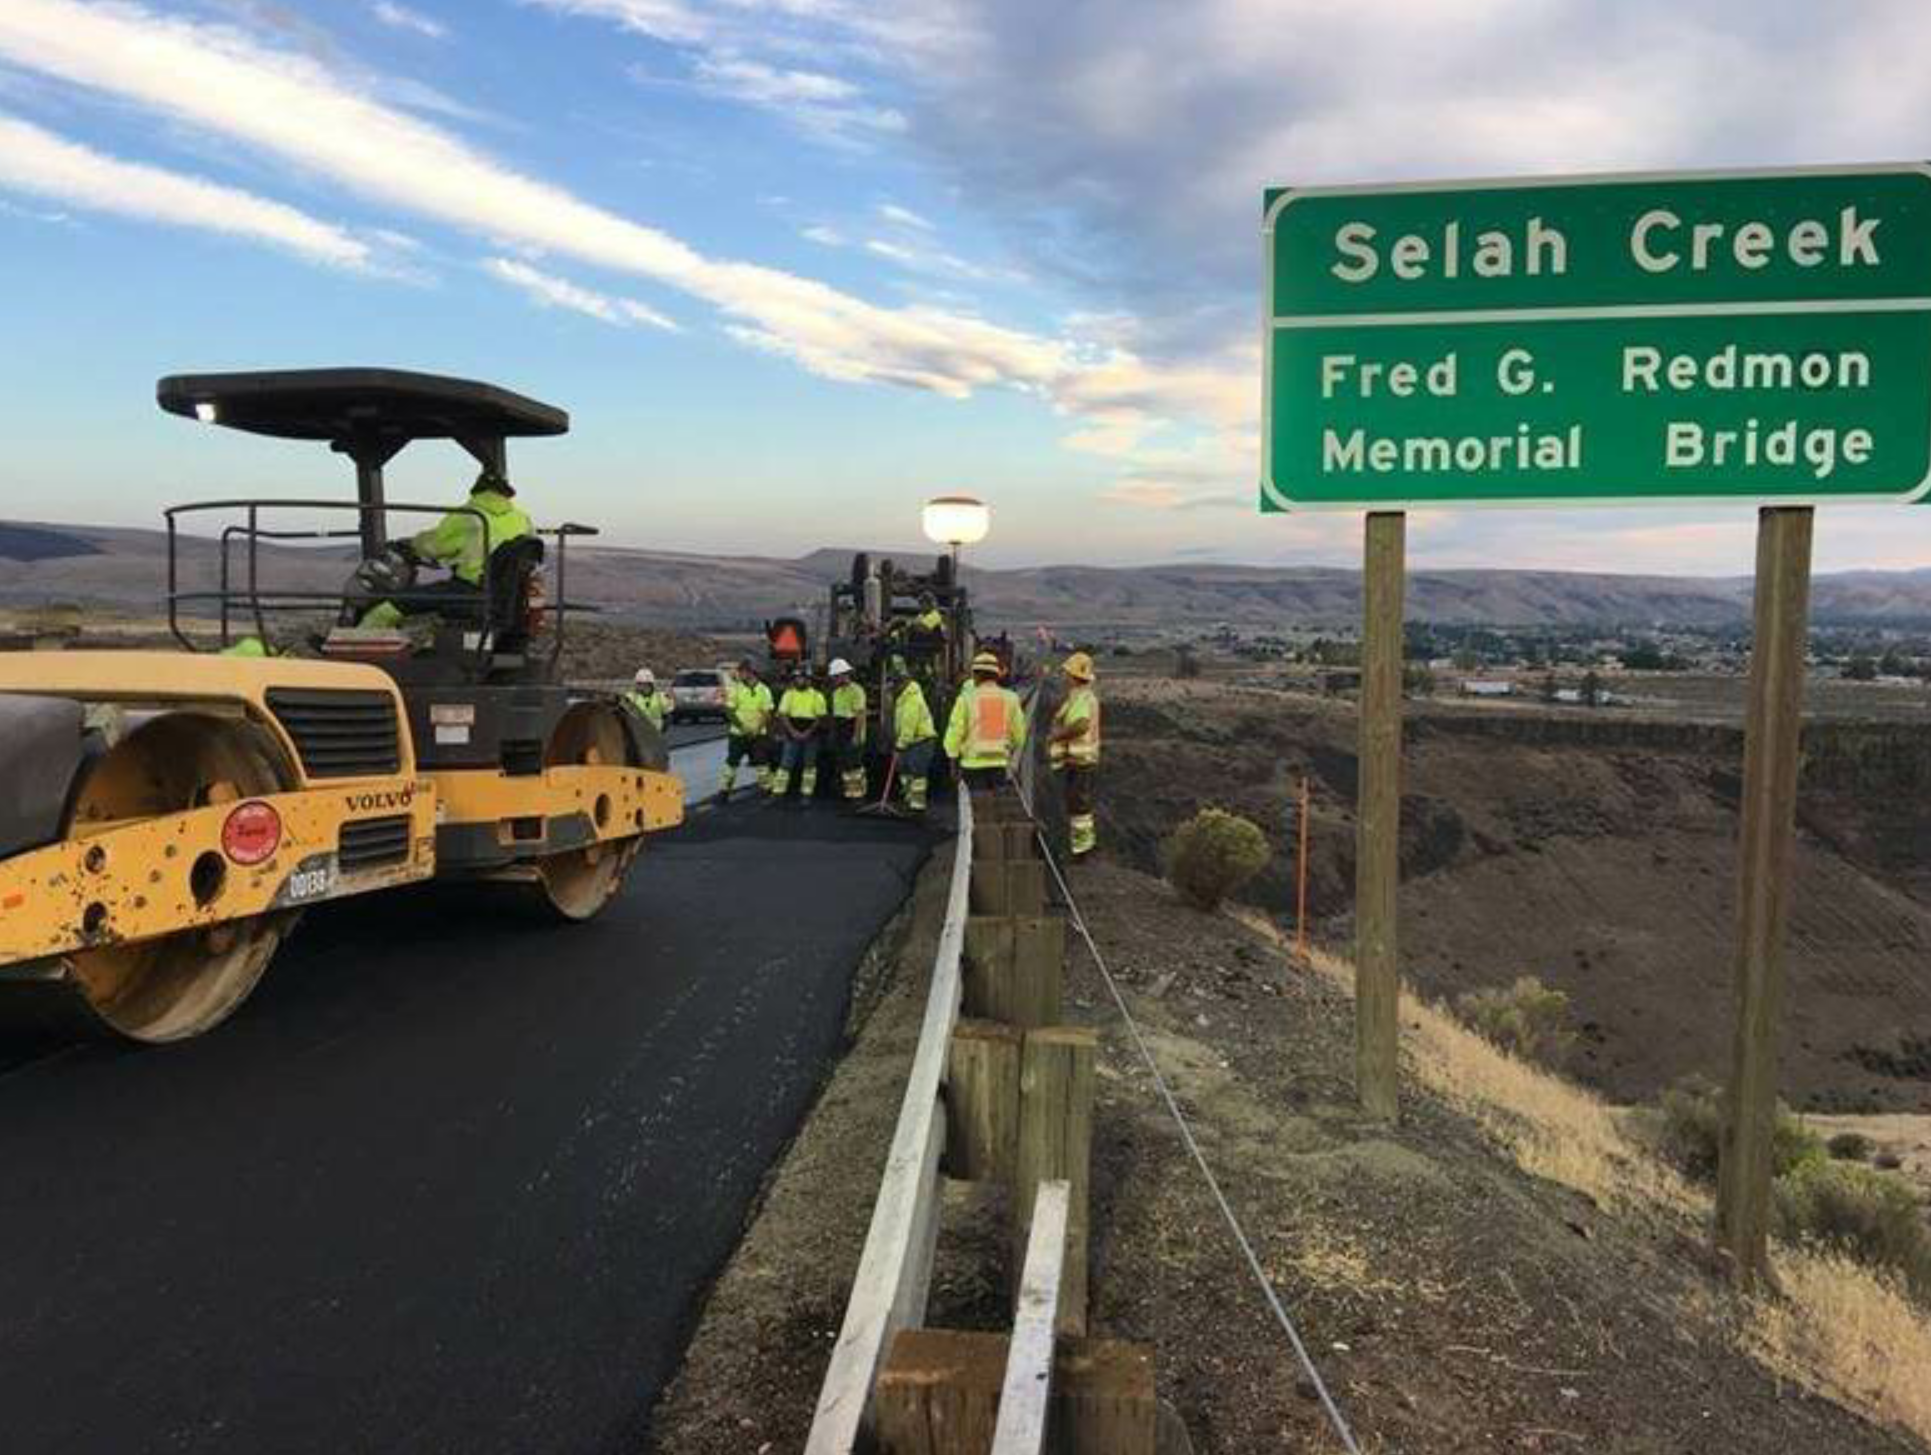 Columbia Paving, a WAPA member, paved the Selah Creek Bridge deck. In these pictures, the team prepares to take off from the bridge seat and double-checks the work once the lane is under way.